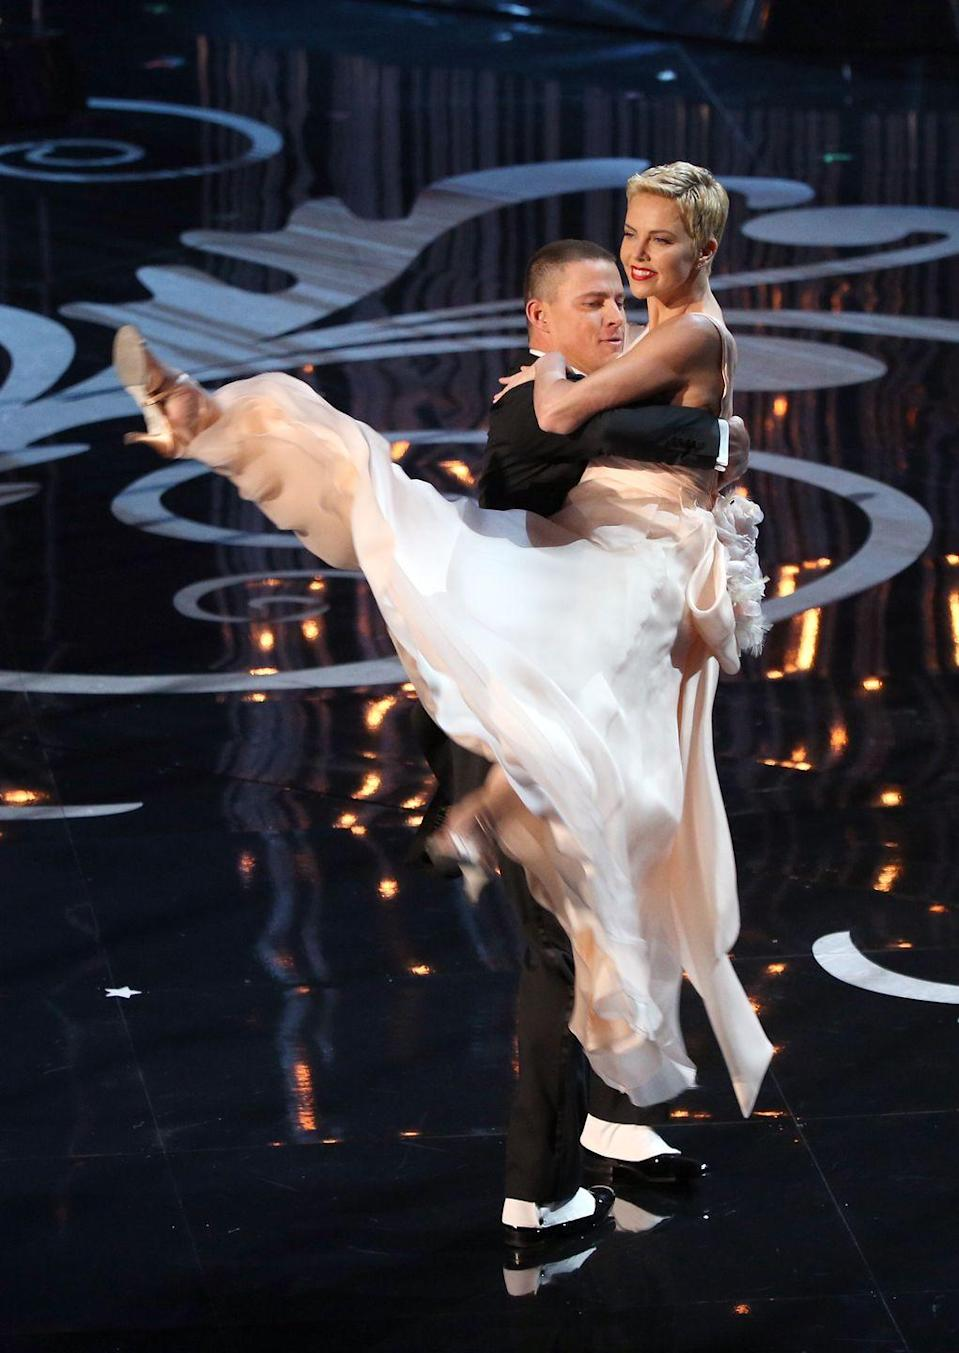 """<p>Charlize Theron showed off her dance moves with Channing Tatum in <a href=""""https://youtu.be/ugiCxCfqPi4?t=244"""" rel=""""nofollow noopener"""" target=""""_blank"""" data-ylk=""""slk:2013 at the Academy Awards"""" class=""""link rapid-noclick-resp"""">2013 at the Academy Awards</a>. Her impressive dance moves and gracefulness was enough to shock some. </p><p>Early in her career as a model, Charlize still saw herself as a dancer. She even moved to New York to study ballet, but it didn't work out. """"I was broke, I was taking class at the Joffrey Ballet, and my knees gave out,"""" <a href=""""https://www.nytimes.com/2008/02/24/style/tmagazine/24coverlynn.html"""" rel=""""nofollow noopener"""" target=""""_blank"""" data-ylk=""""slk:she told The New York Times"""" class=""""link rapid-noclick-resp"""">she told <em>The New York Times</em></a>. """"I realized I couldn't dance anymore, and I went into a major depression."""" Now Charlize is an Oscar-winning actress, so it seems it all worked out.</p>"""